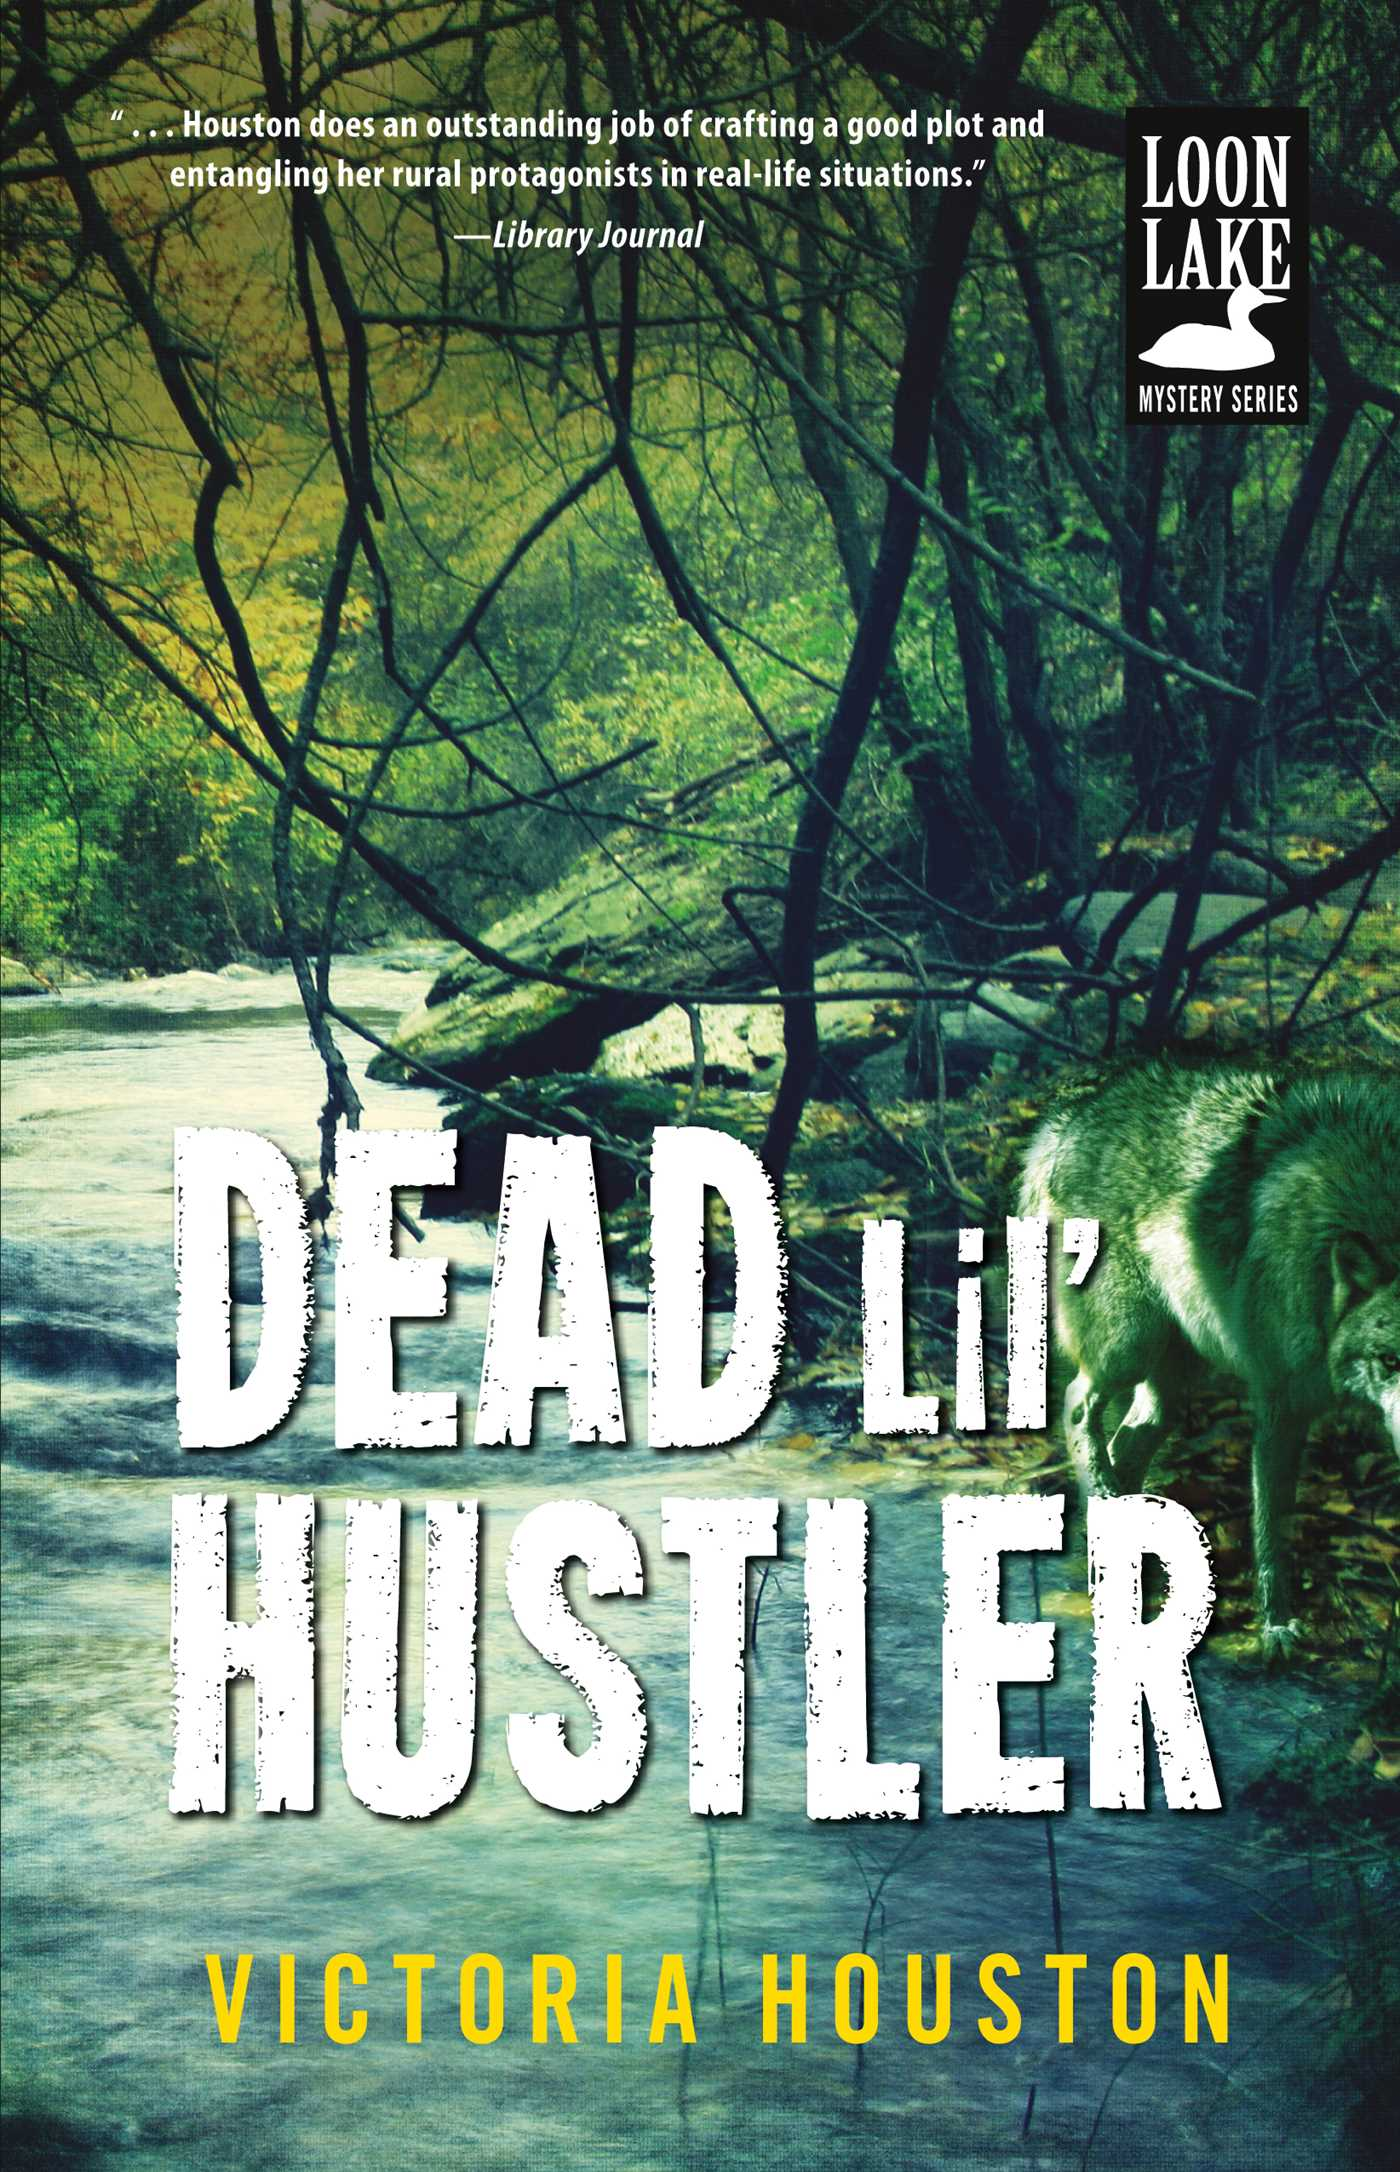 Cover image for Dead Lil' Hustler [electronic resource] : A Loon Lake Mystery